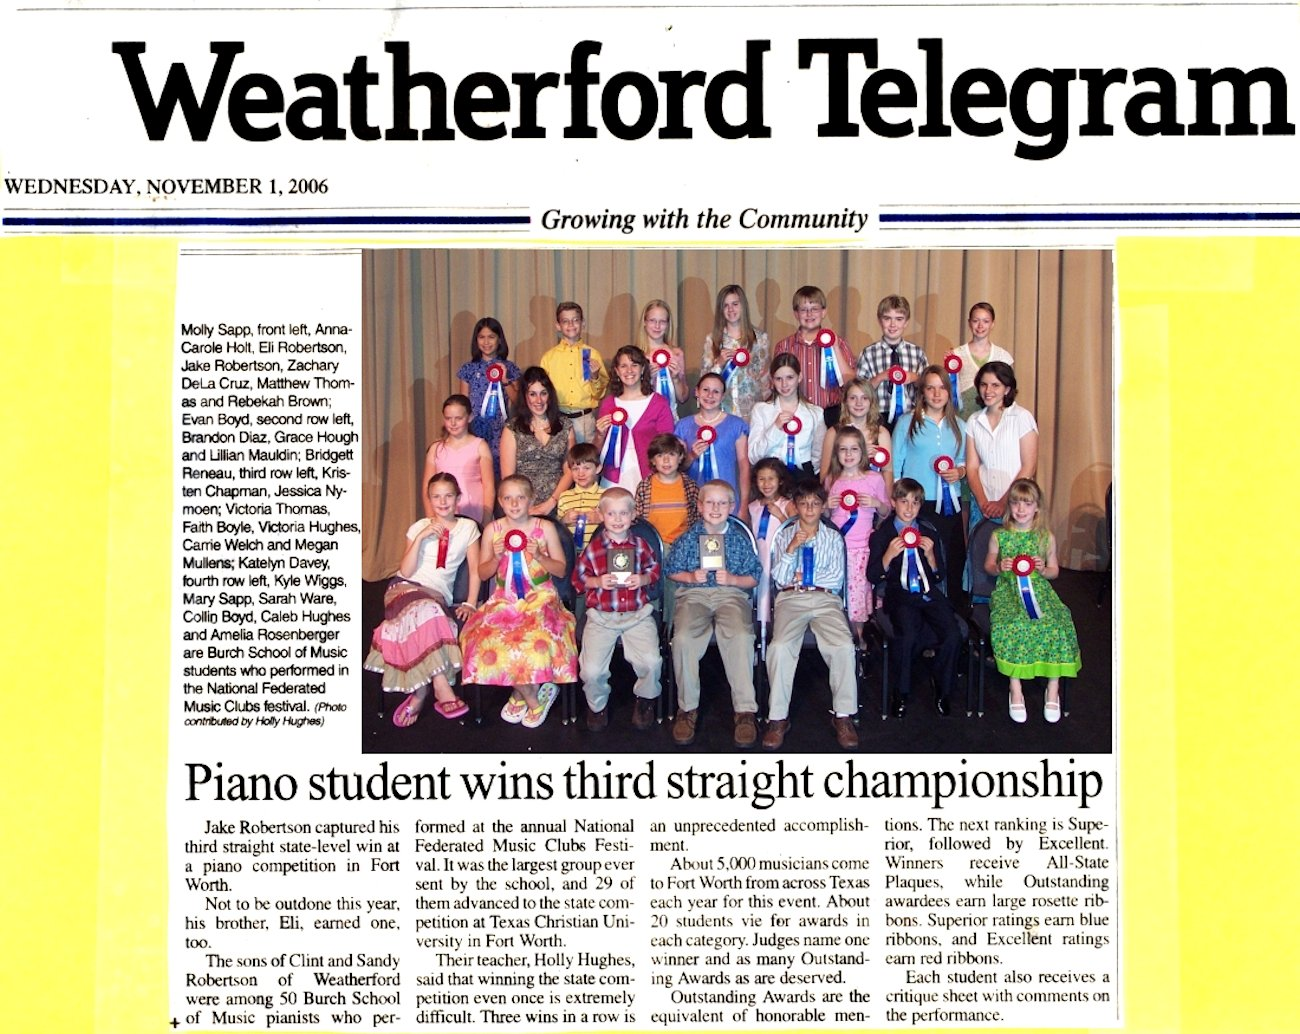 Piano Student Wins Third Straight Championship   November 1, 2006